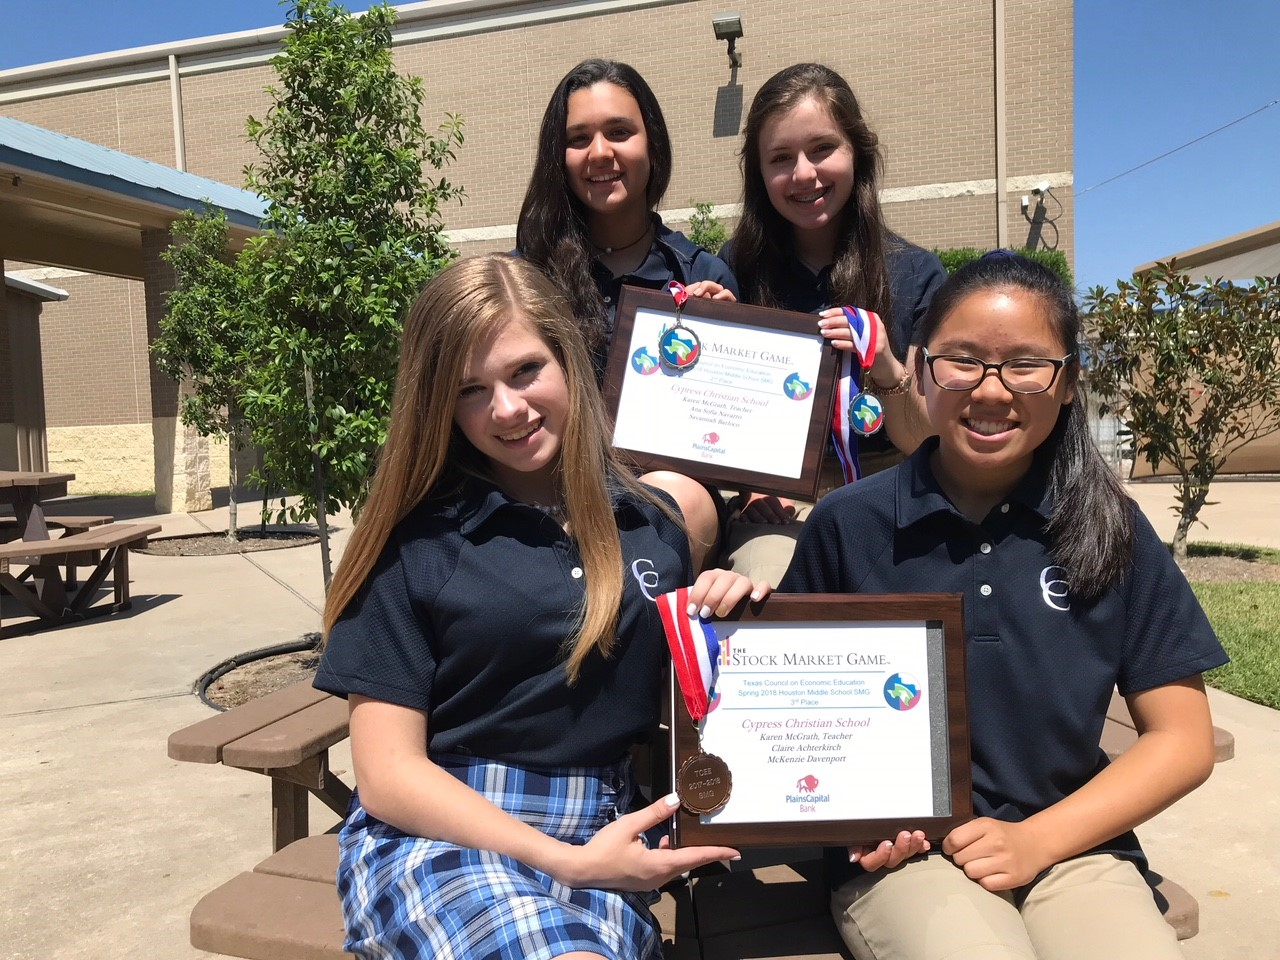 Eighth Graders Place 2nd & 3rd in The Stock Market Game